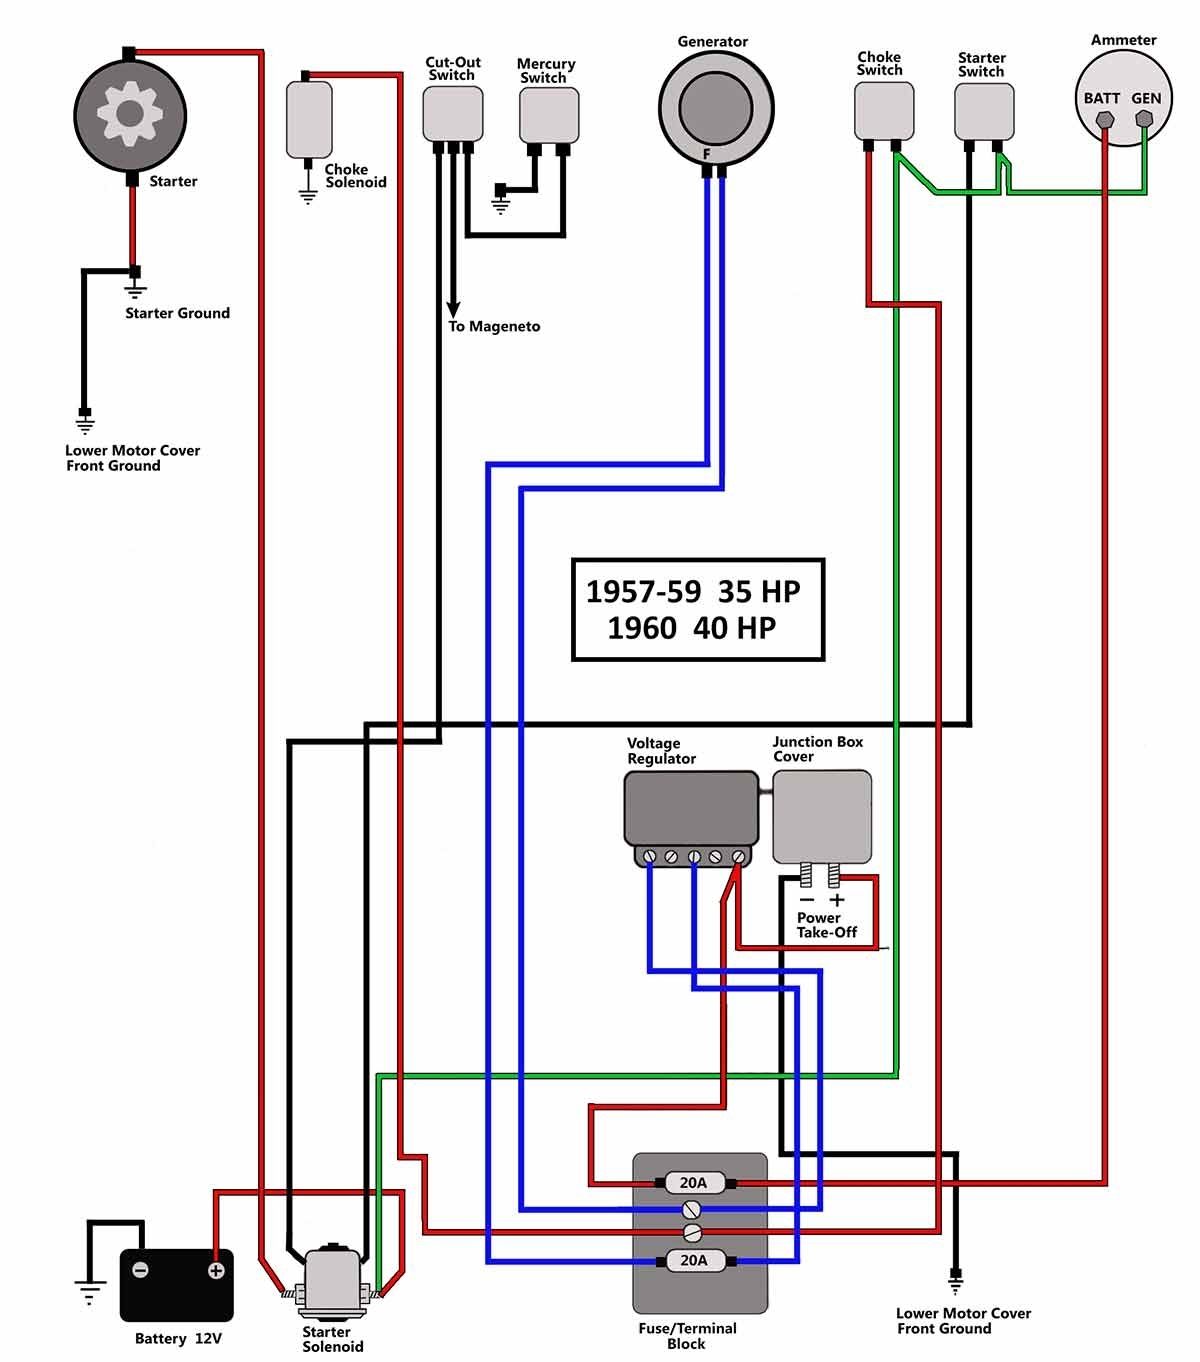 vdo gauges wiring diagrams and boat tach diagram e z go golf cart for boat gauge wiring diagram for tachometer hour meter wiring diagram water meter installation diagram form 35s meter wiring diagram at soozxer.org